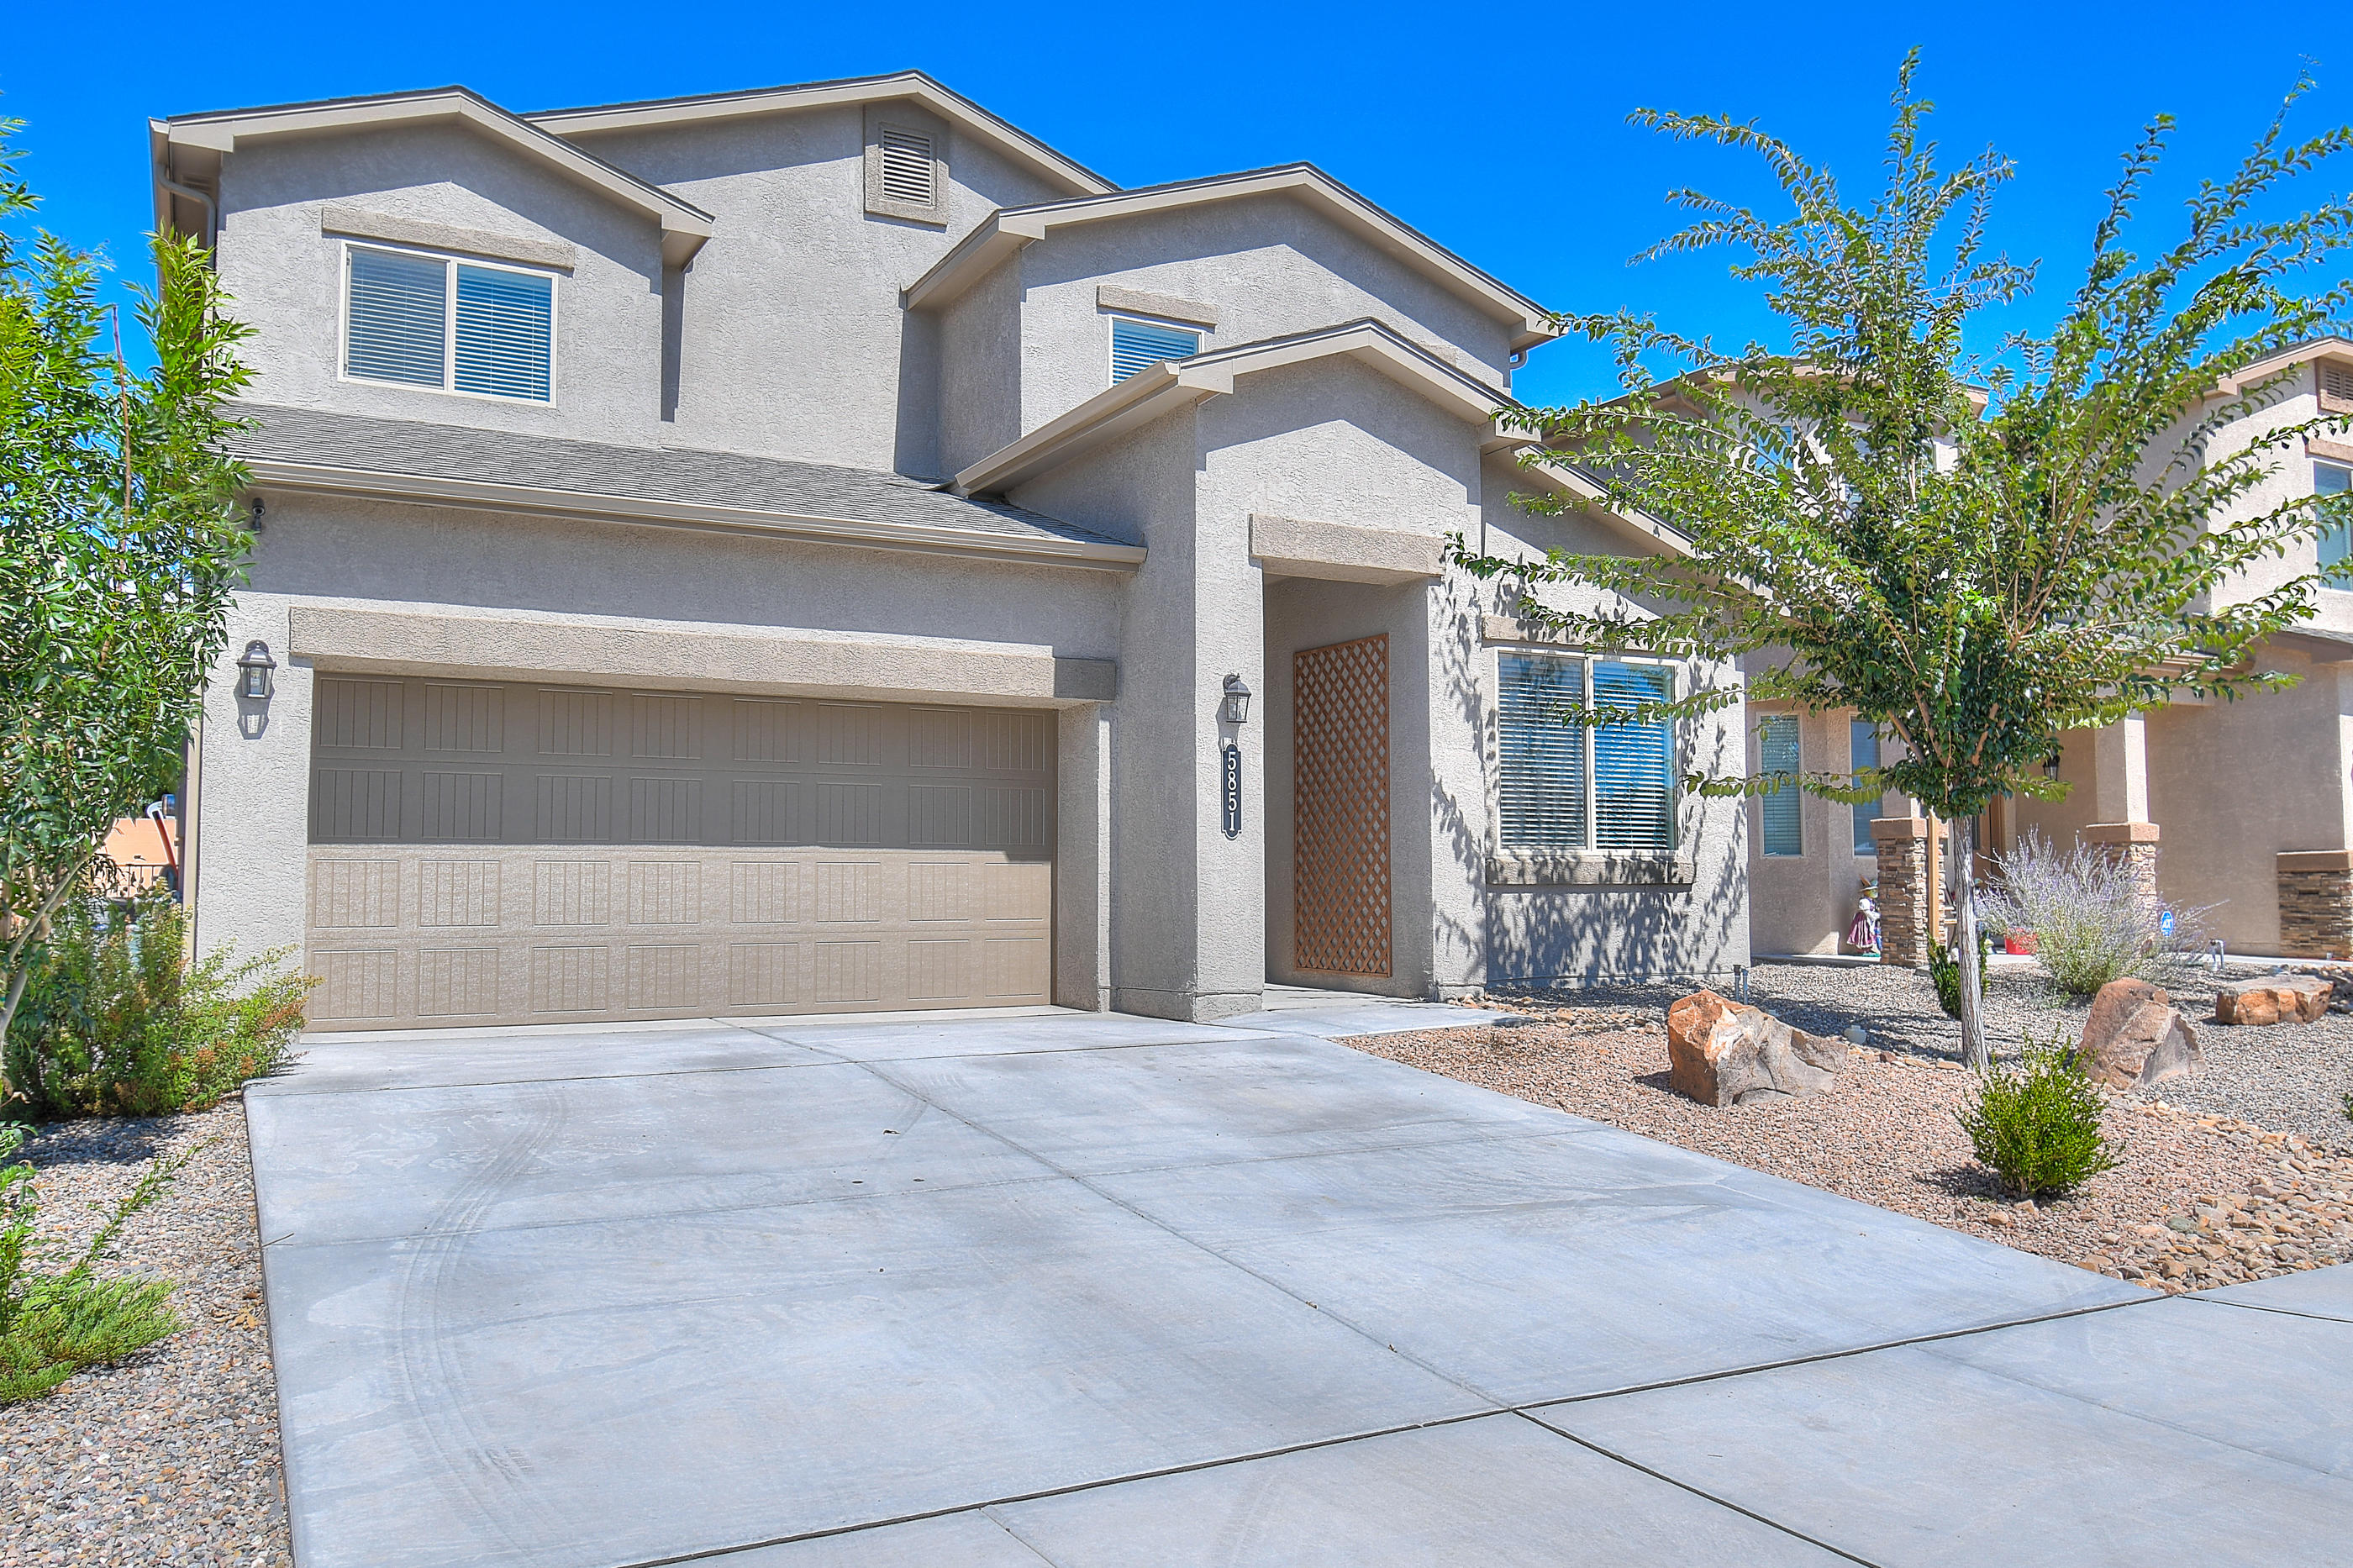 5851 NW Mafraq Avenue, Northwest Albuquerque and Northwest Heights, New Mexico